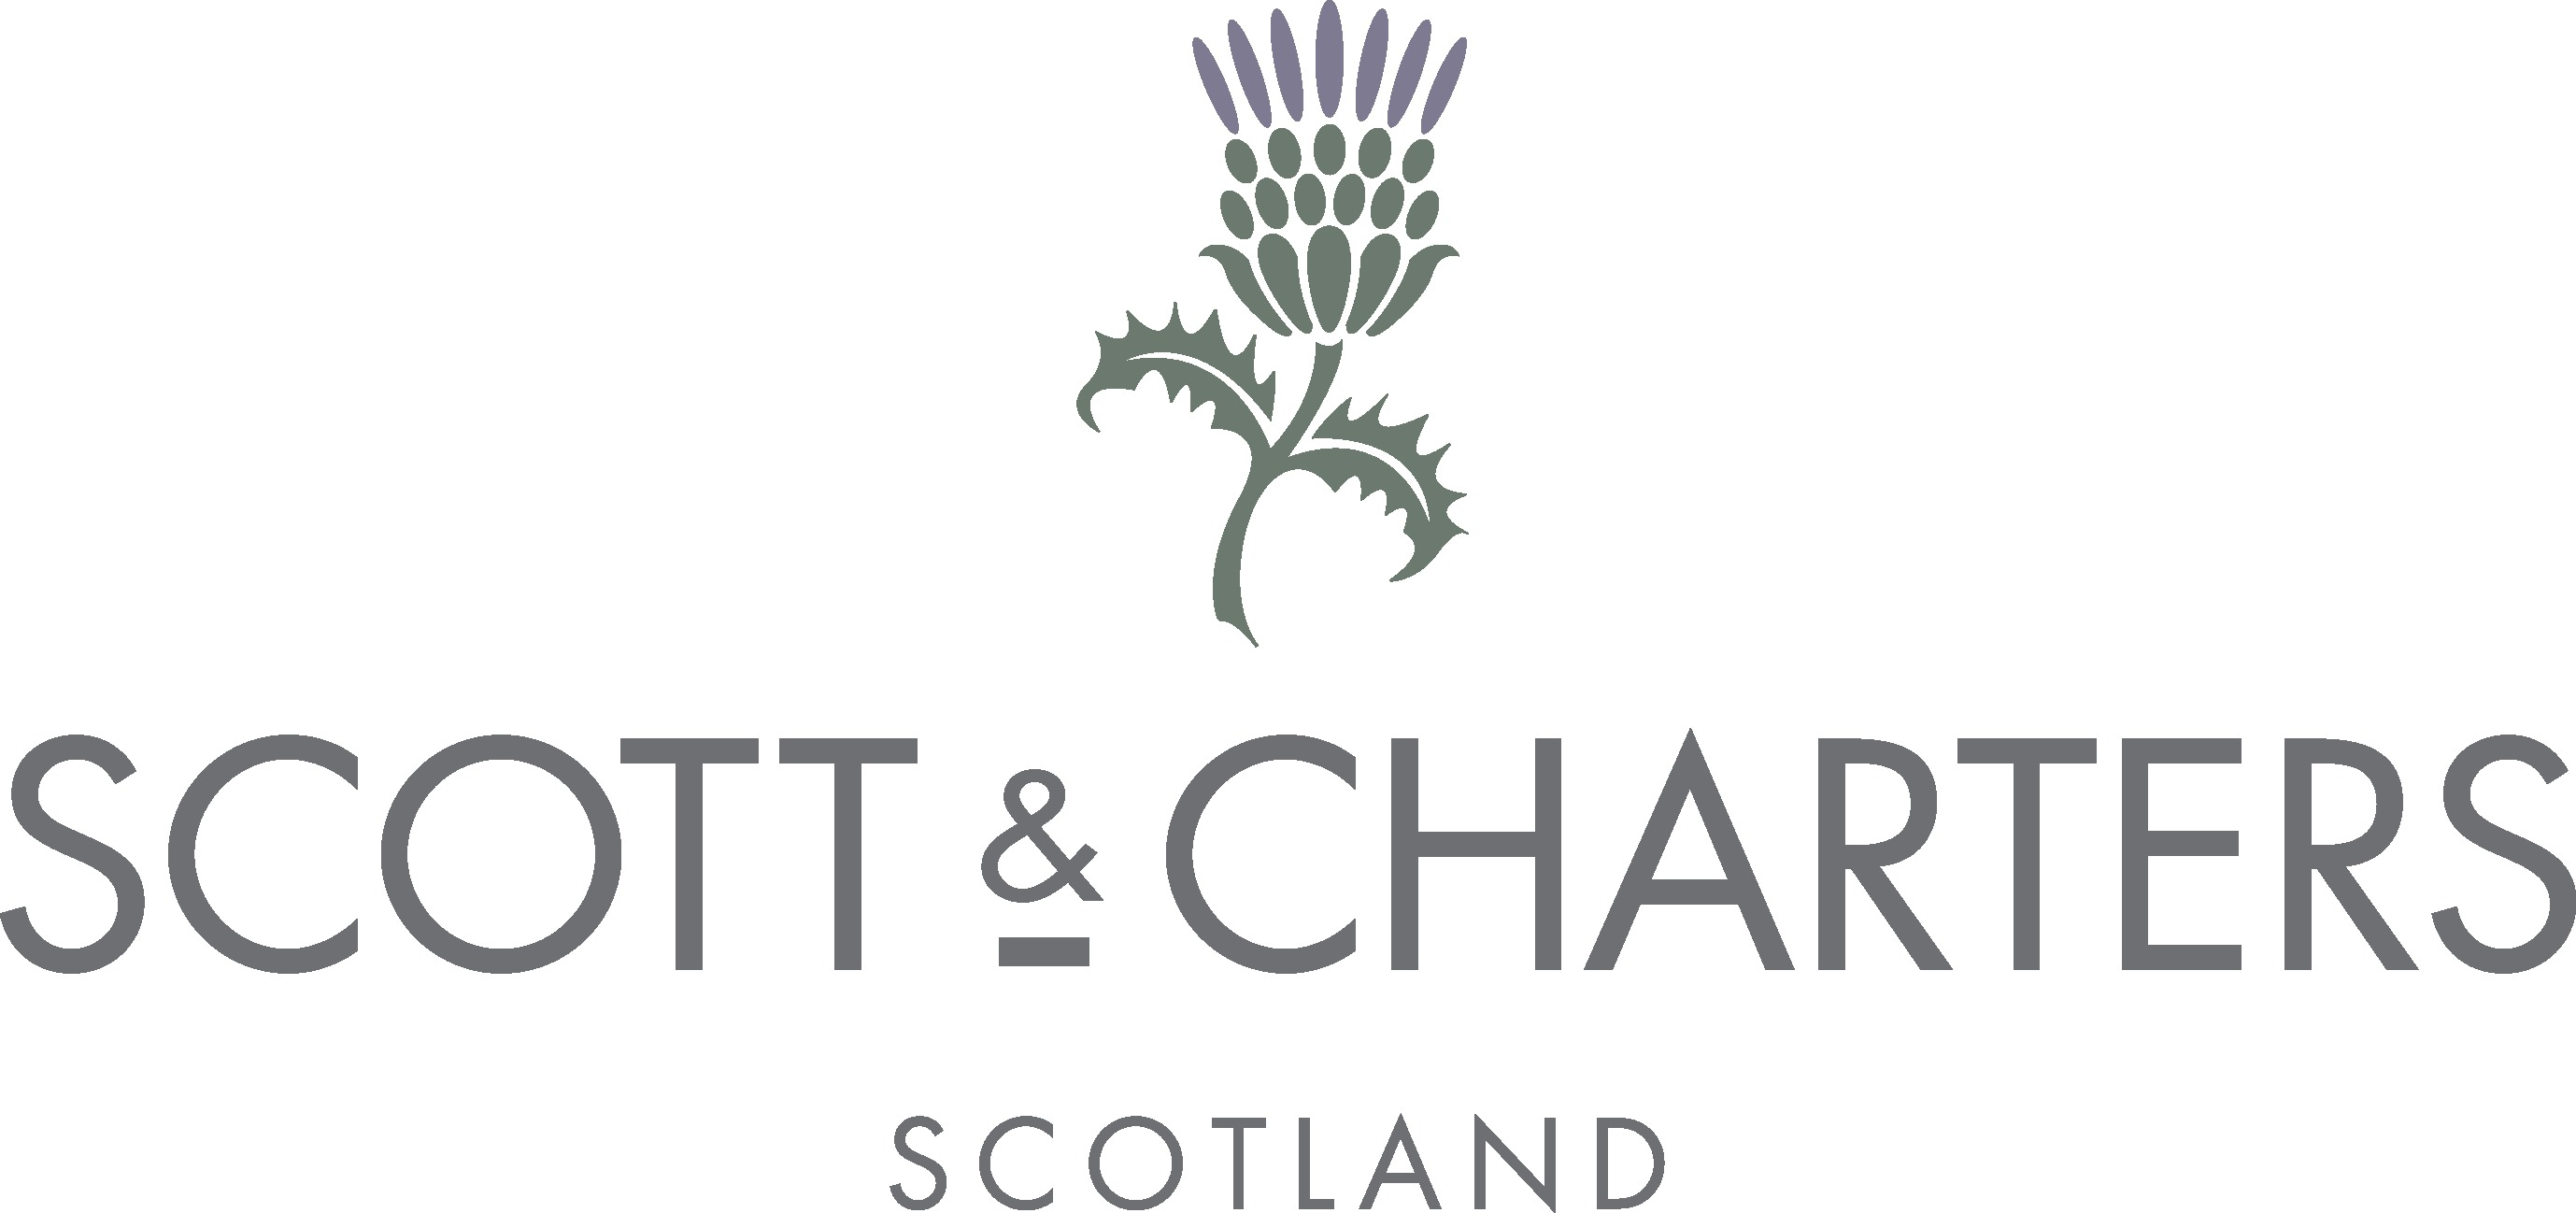 Scott&Charters Full Logo JPEG